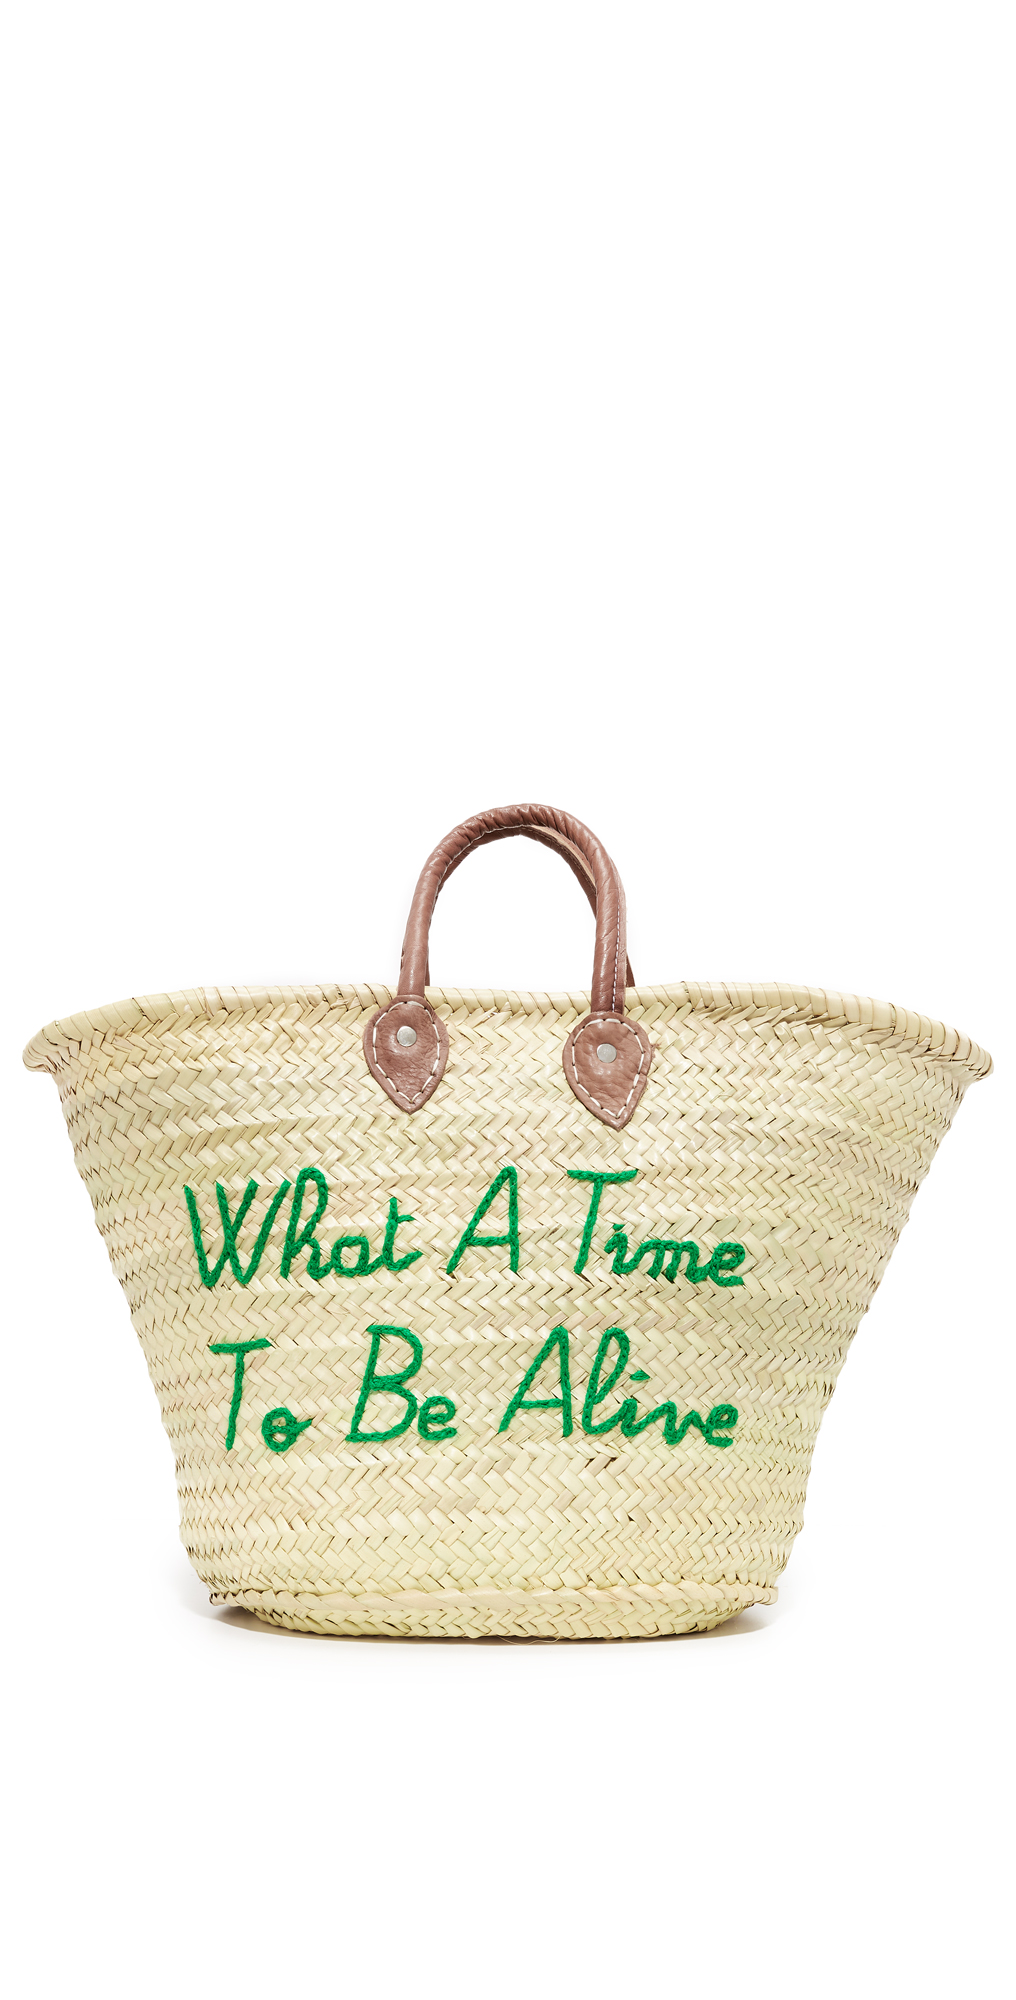 What a Time To Be Alive Tote Poolside Bags